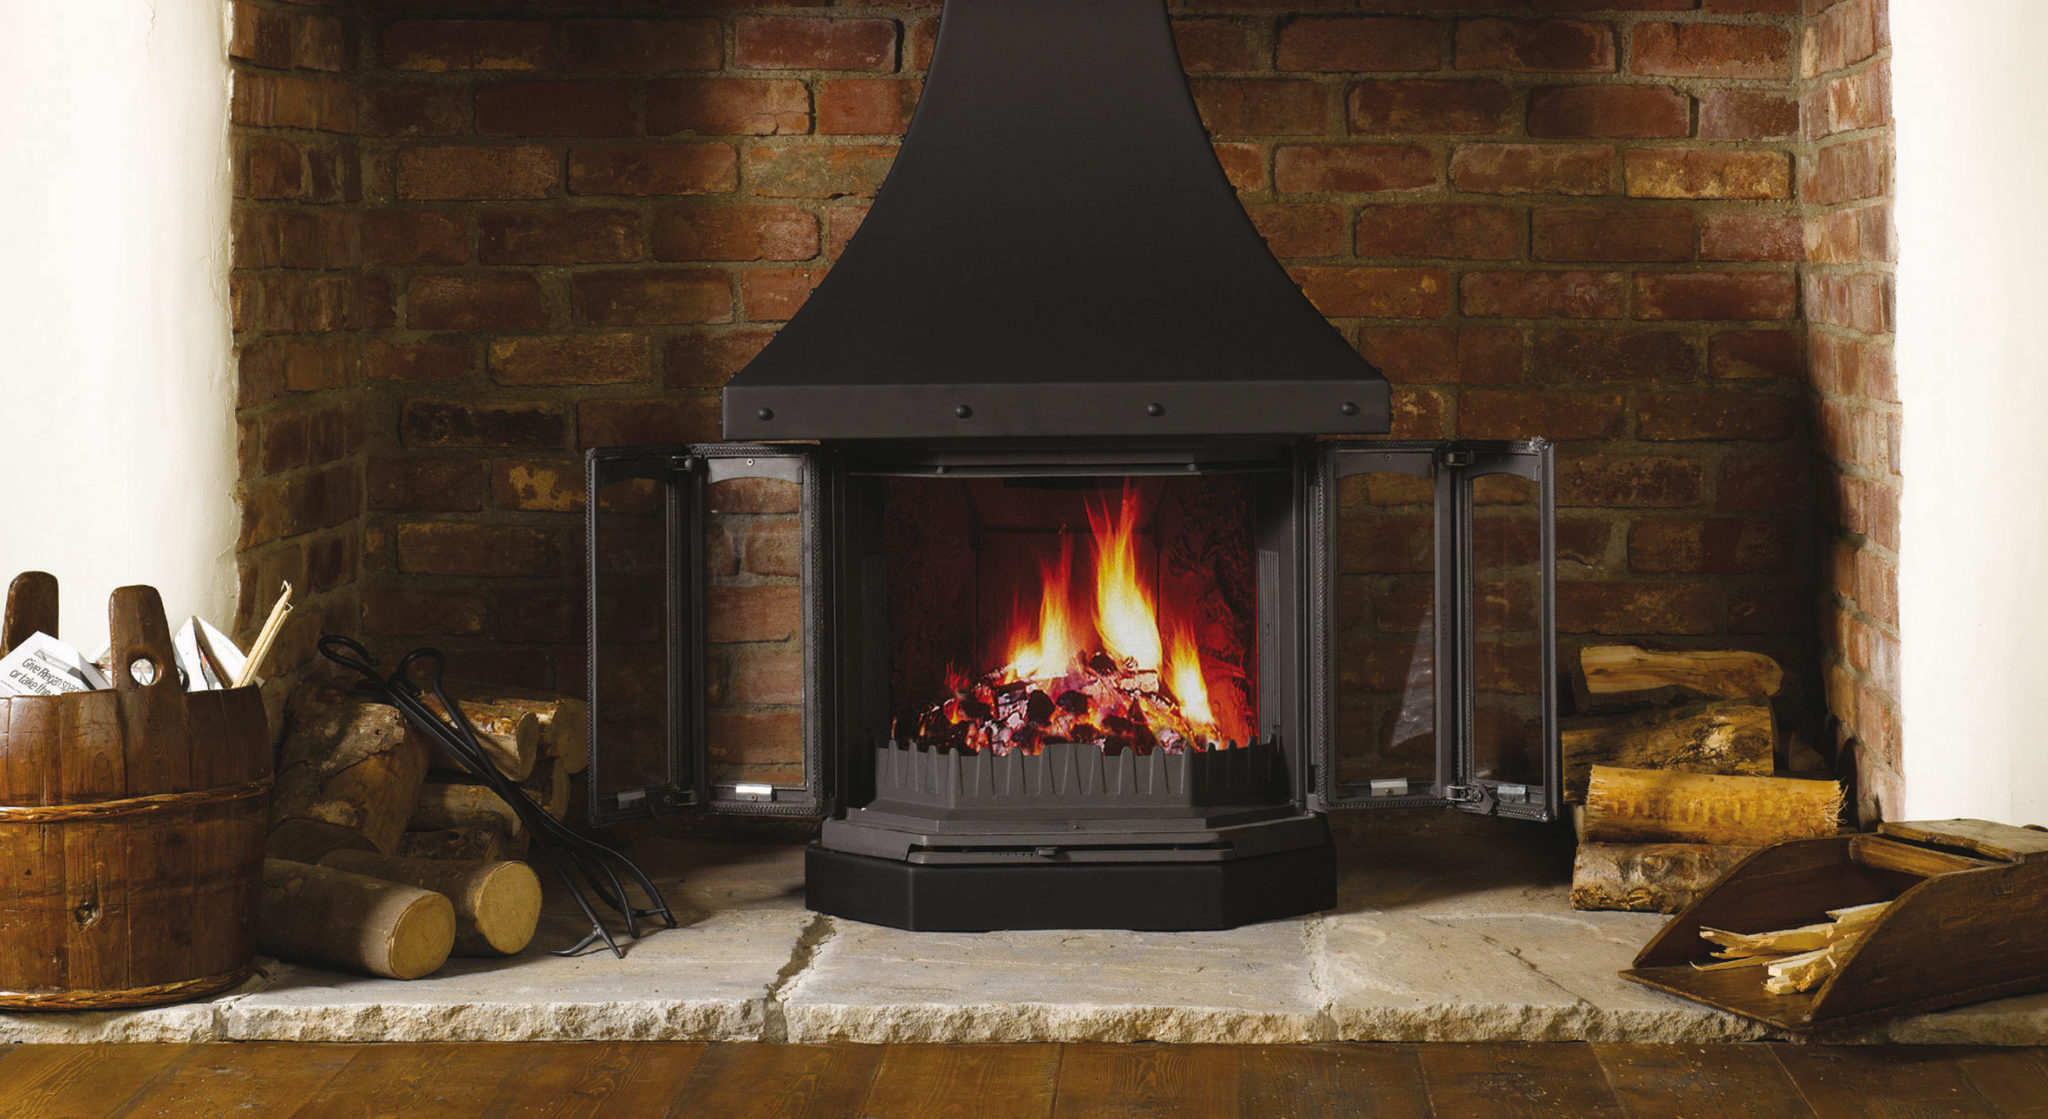 Find Your Fairytale Fireplace this Winter